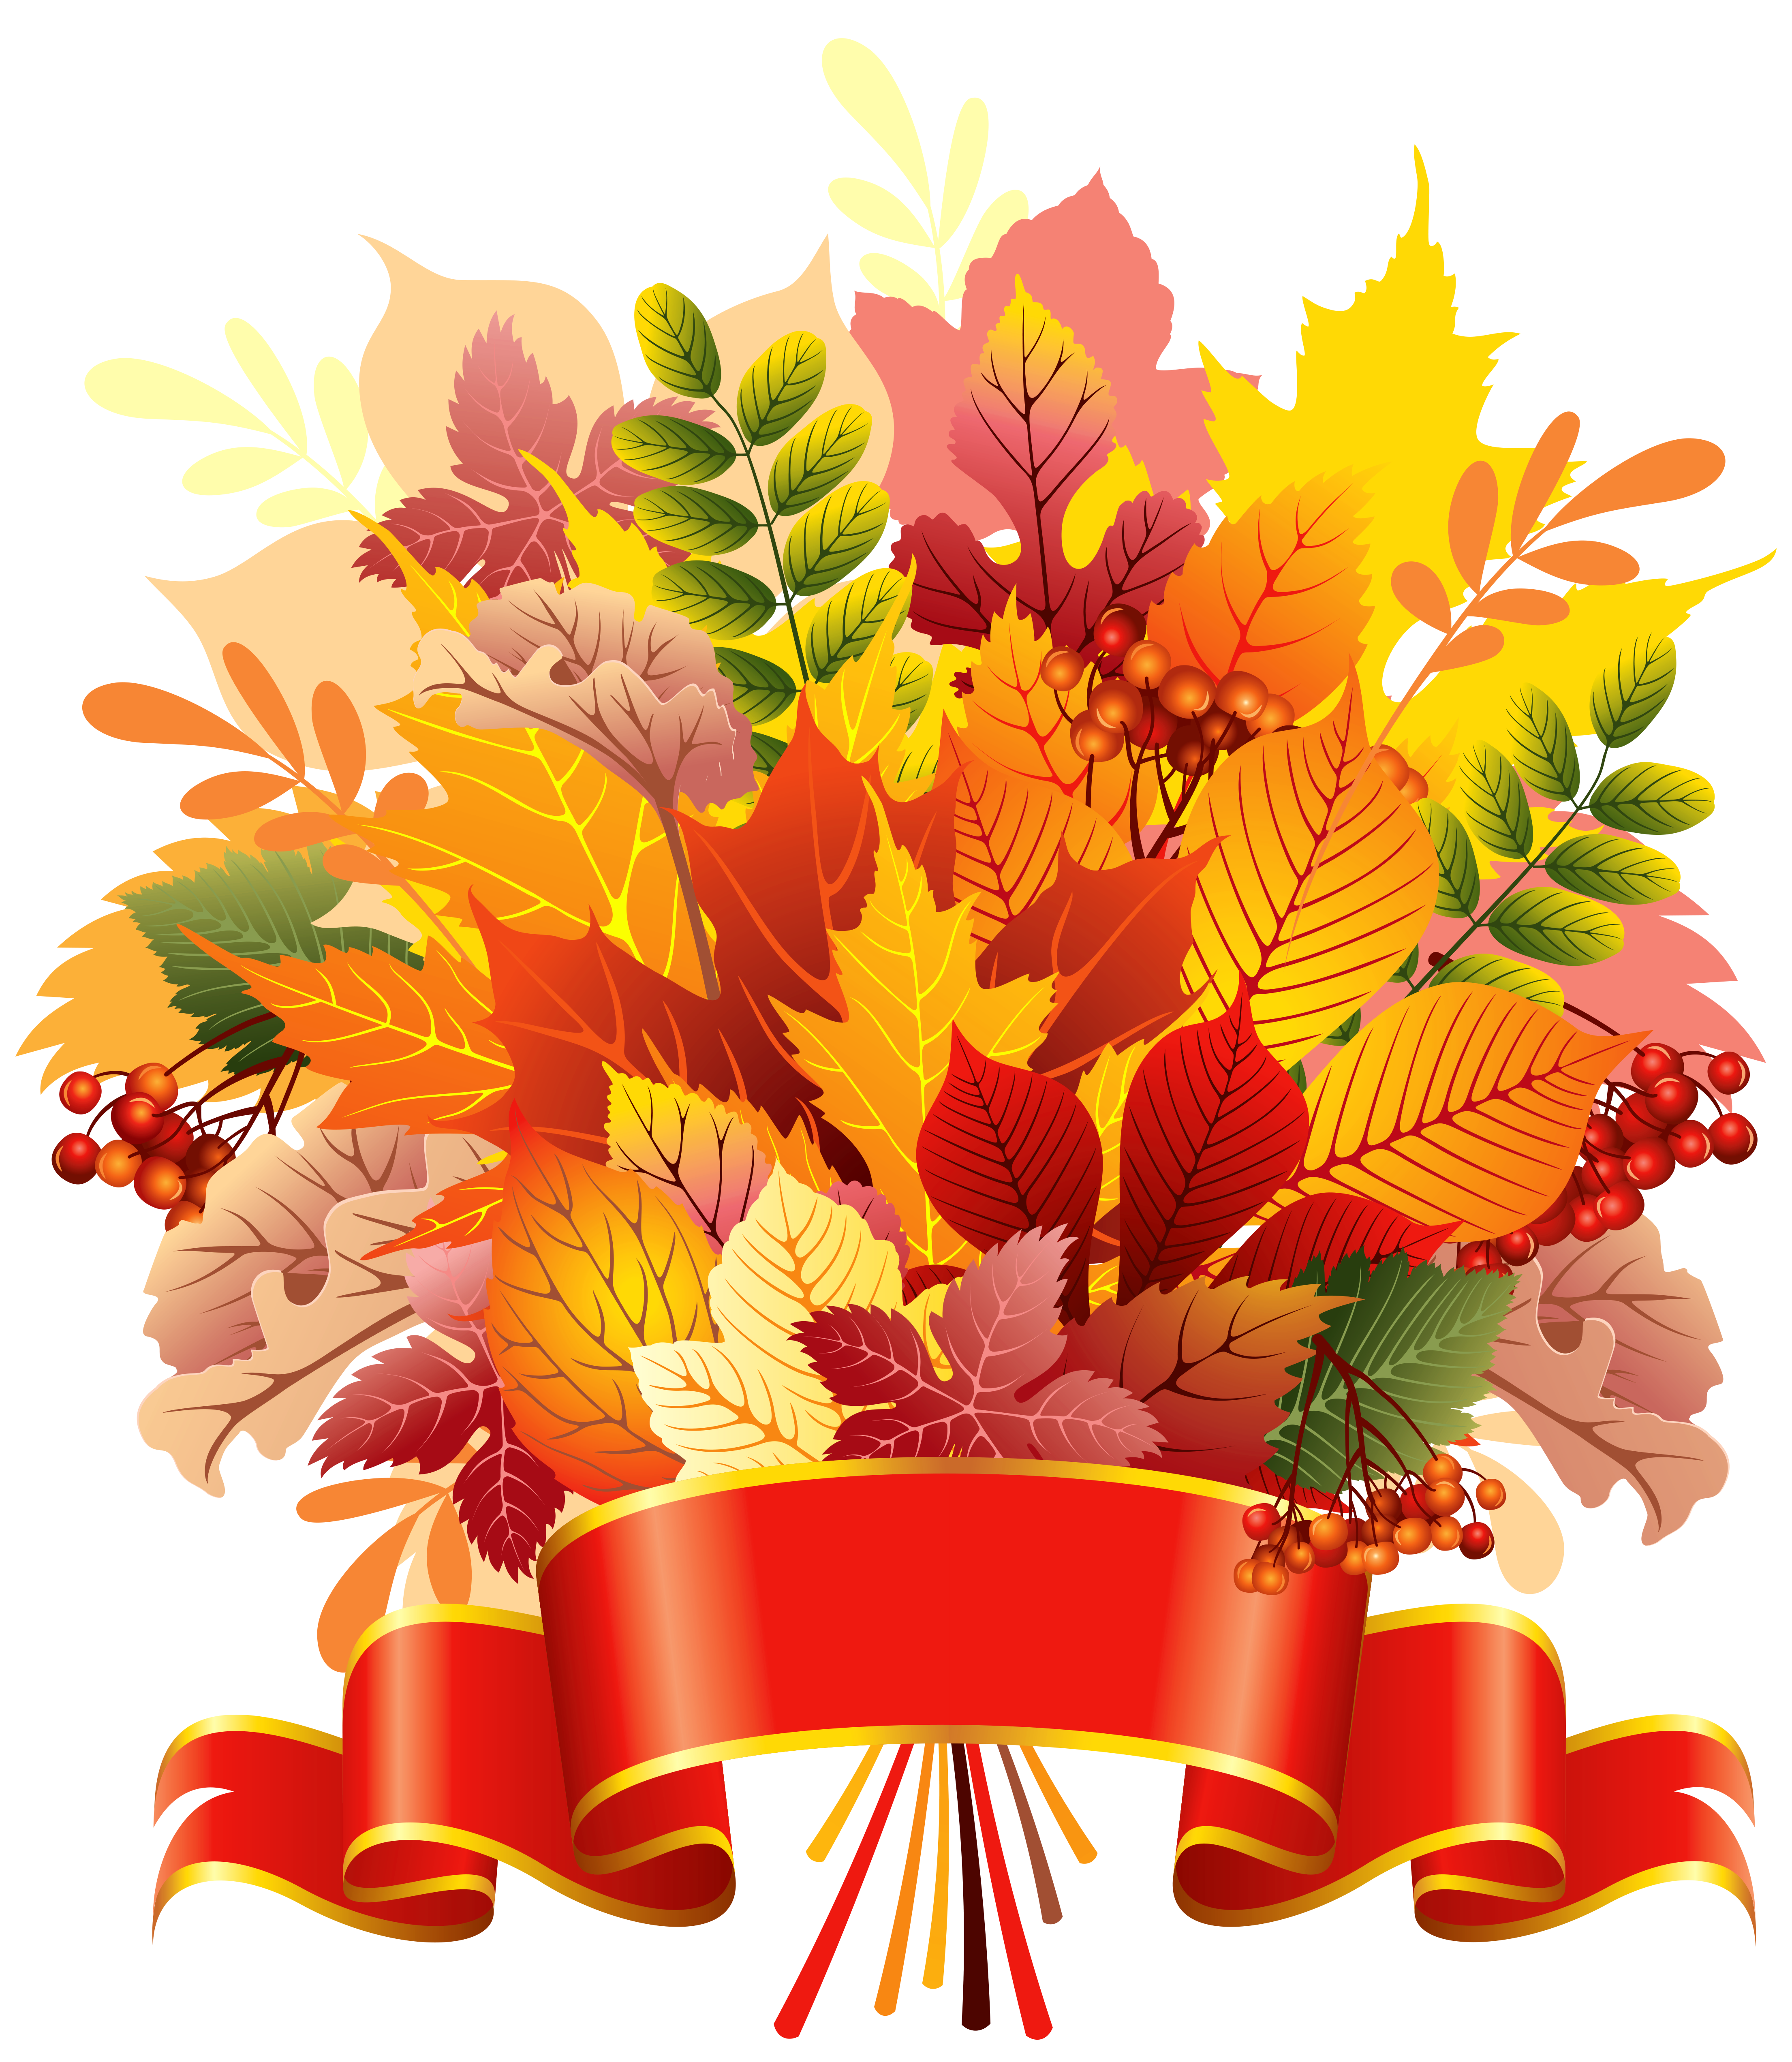 Leaves with banner png. Bouquet clipart autumn